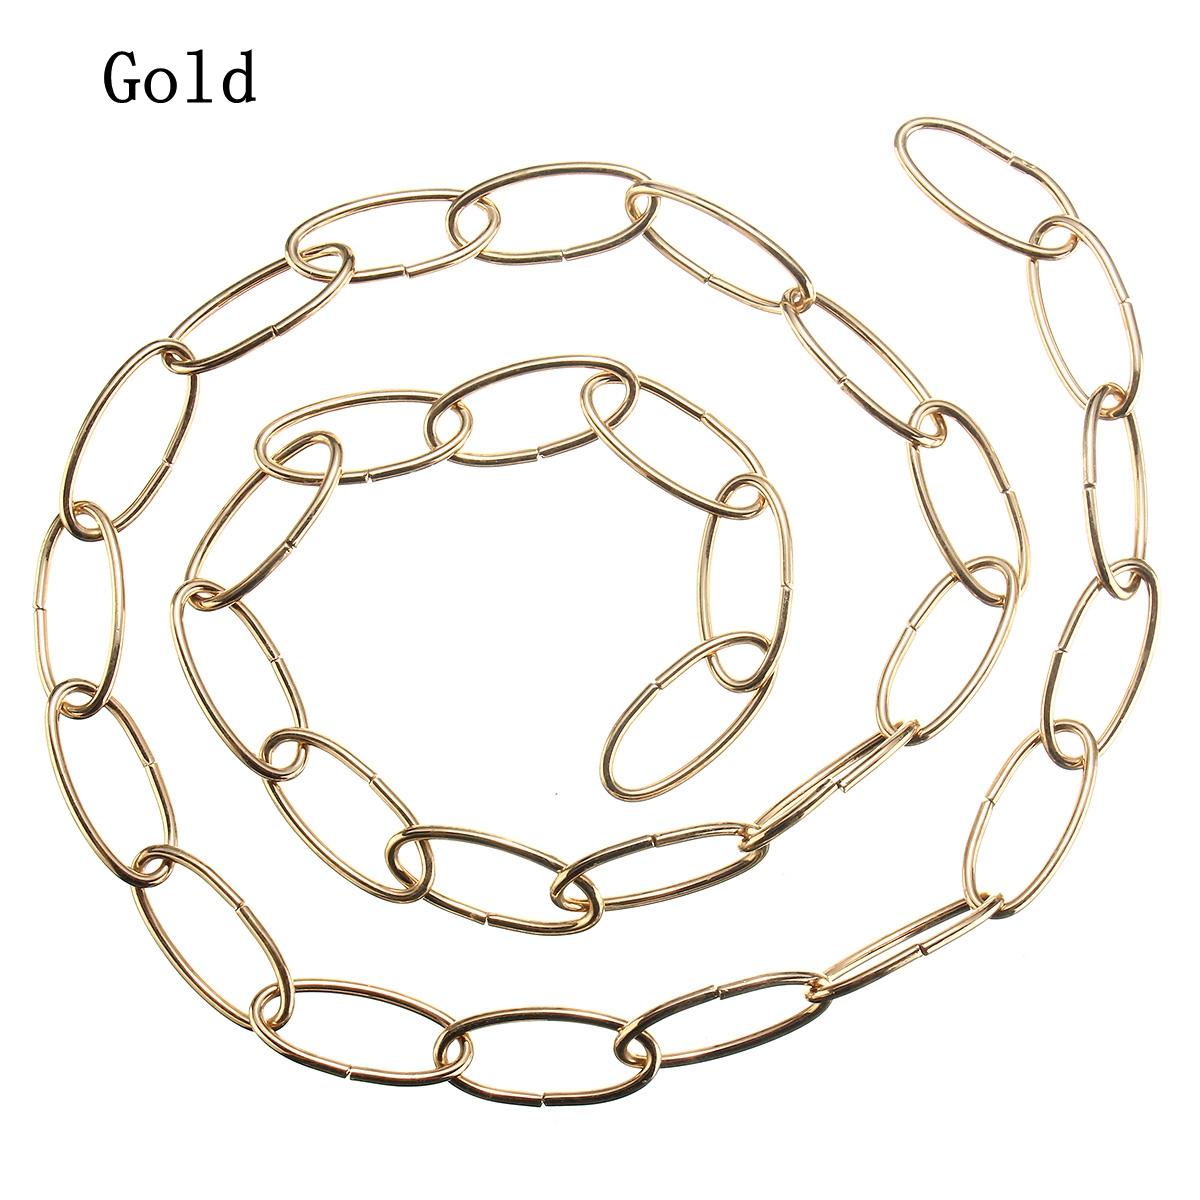 1M Vintage Heavy Duty Chain for Chandelier Hanging Lamp Pendant Lighting 37mm*17mm